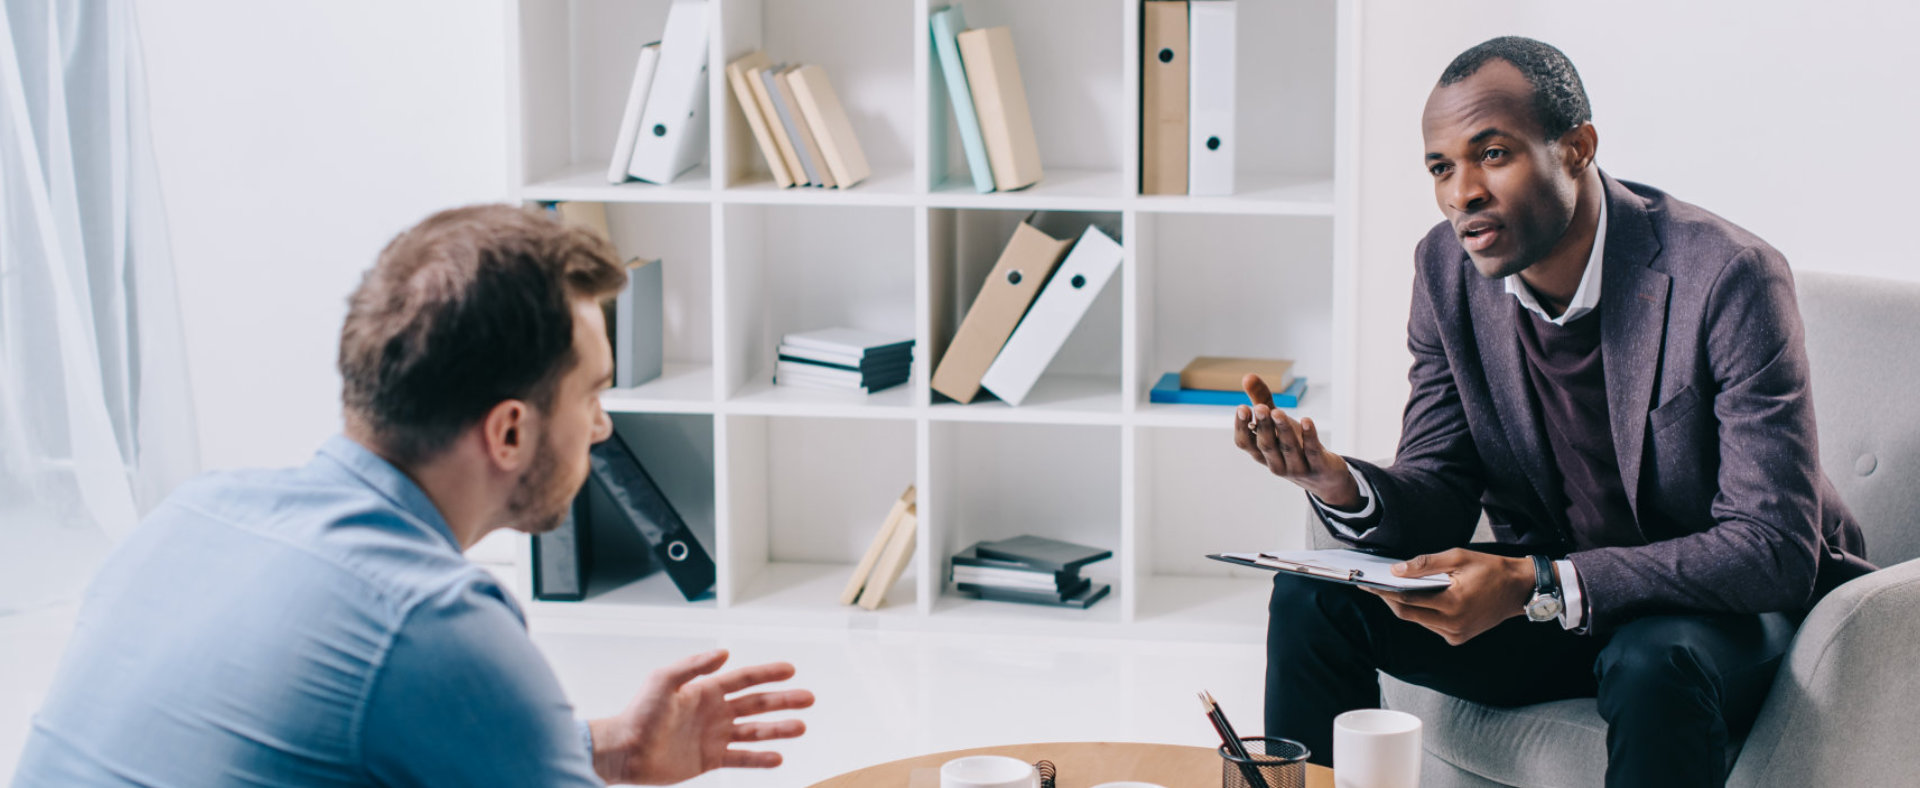 man consultant doing counseling to his client at office